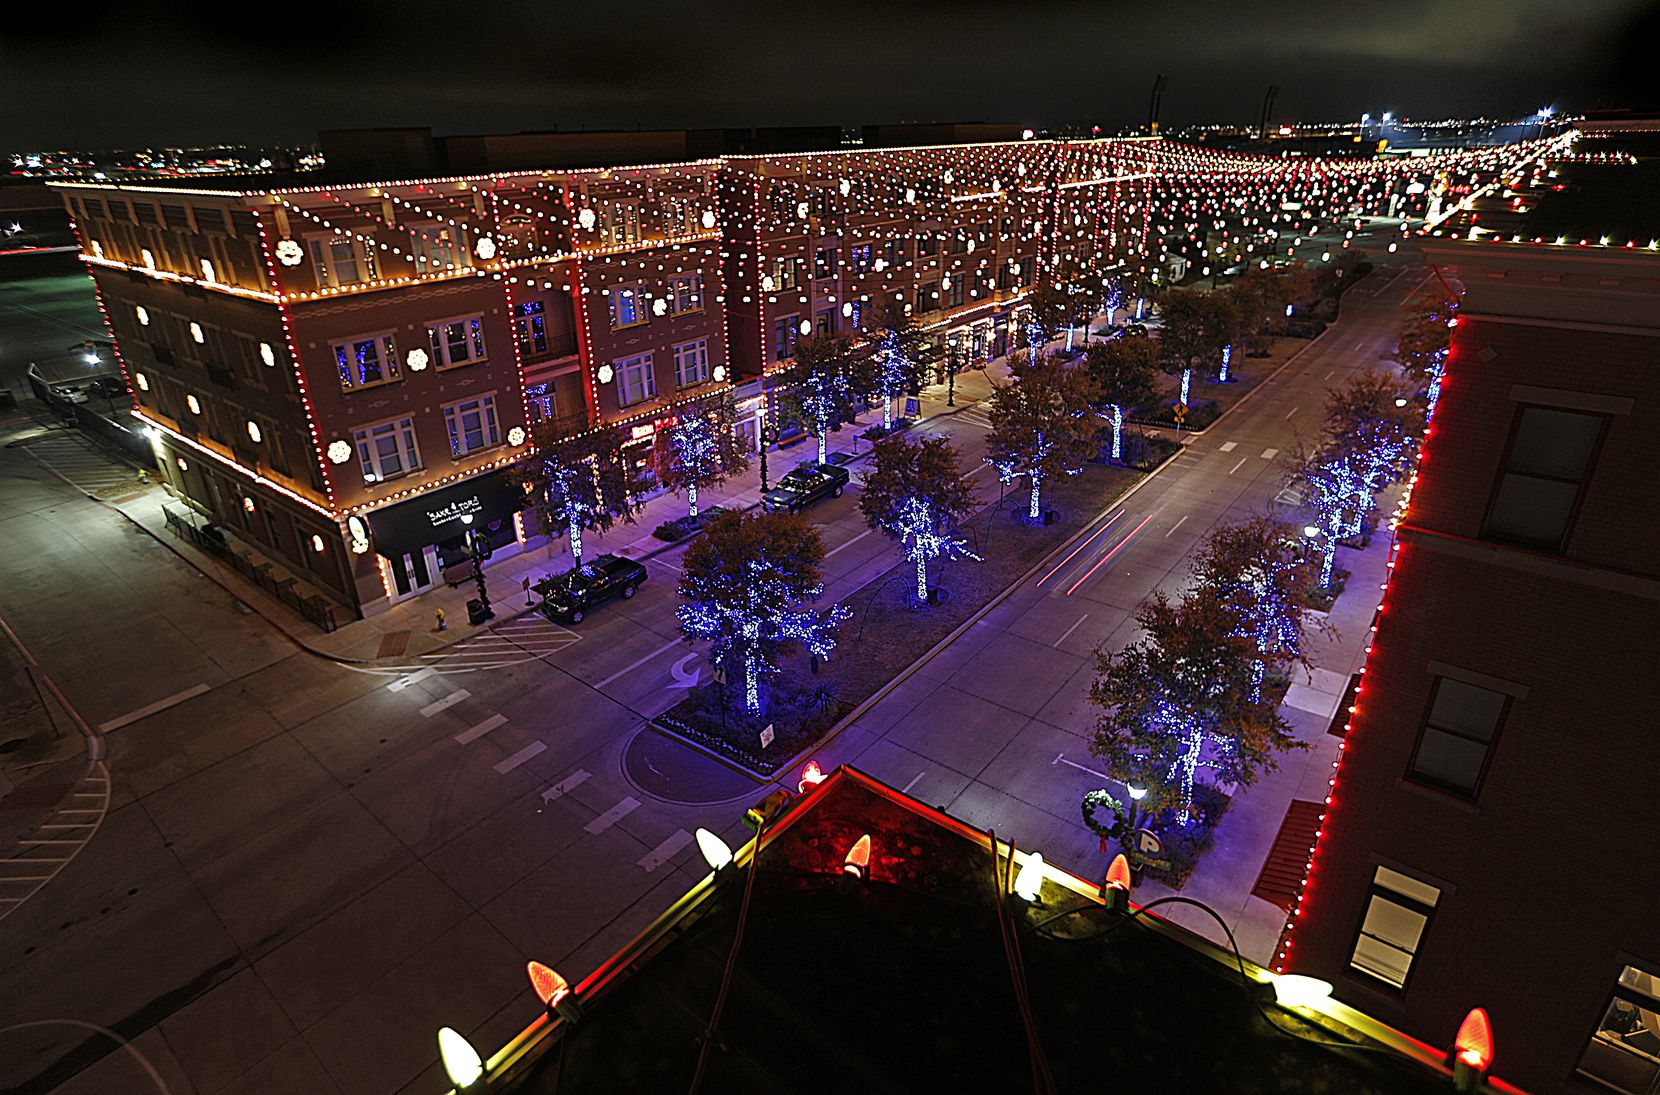 Jeff Trykoski is the mastermind behind the annual holiday light show at Frisco Square which is synchronized to music. He tested the system on Monday night, Nov. 25, 2013.